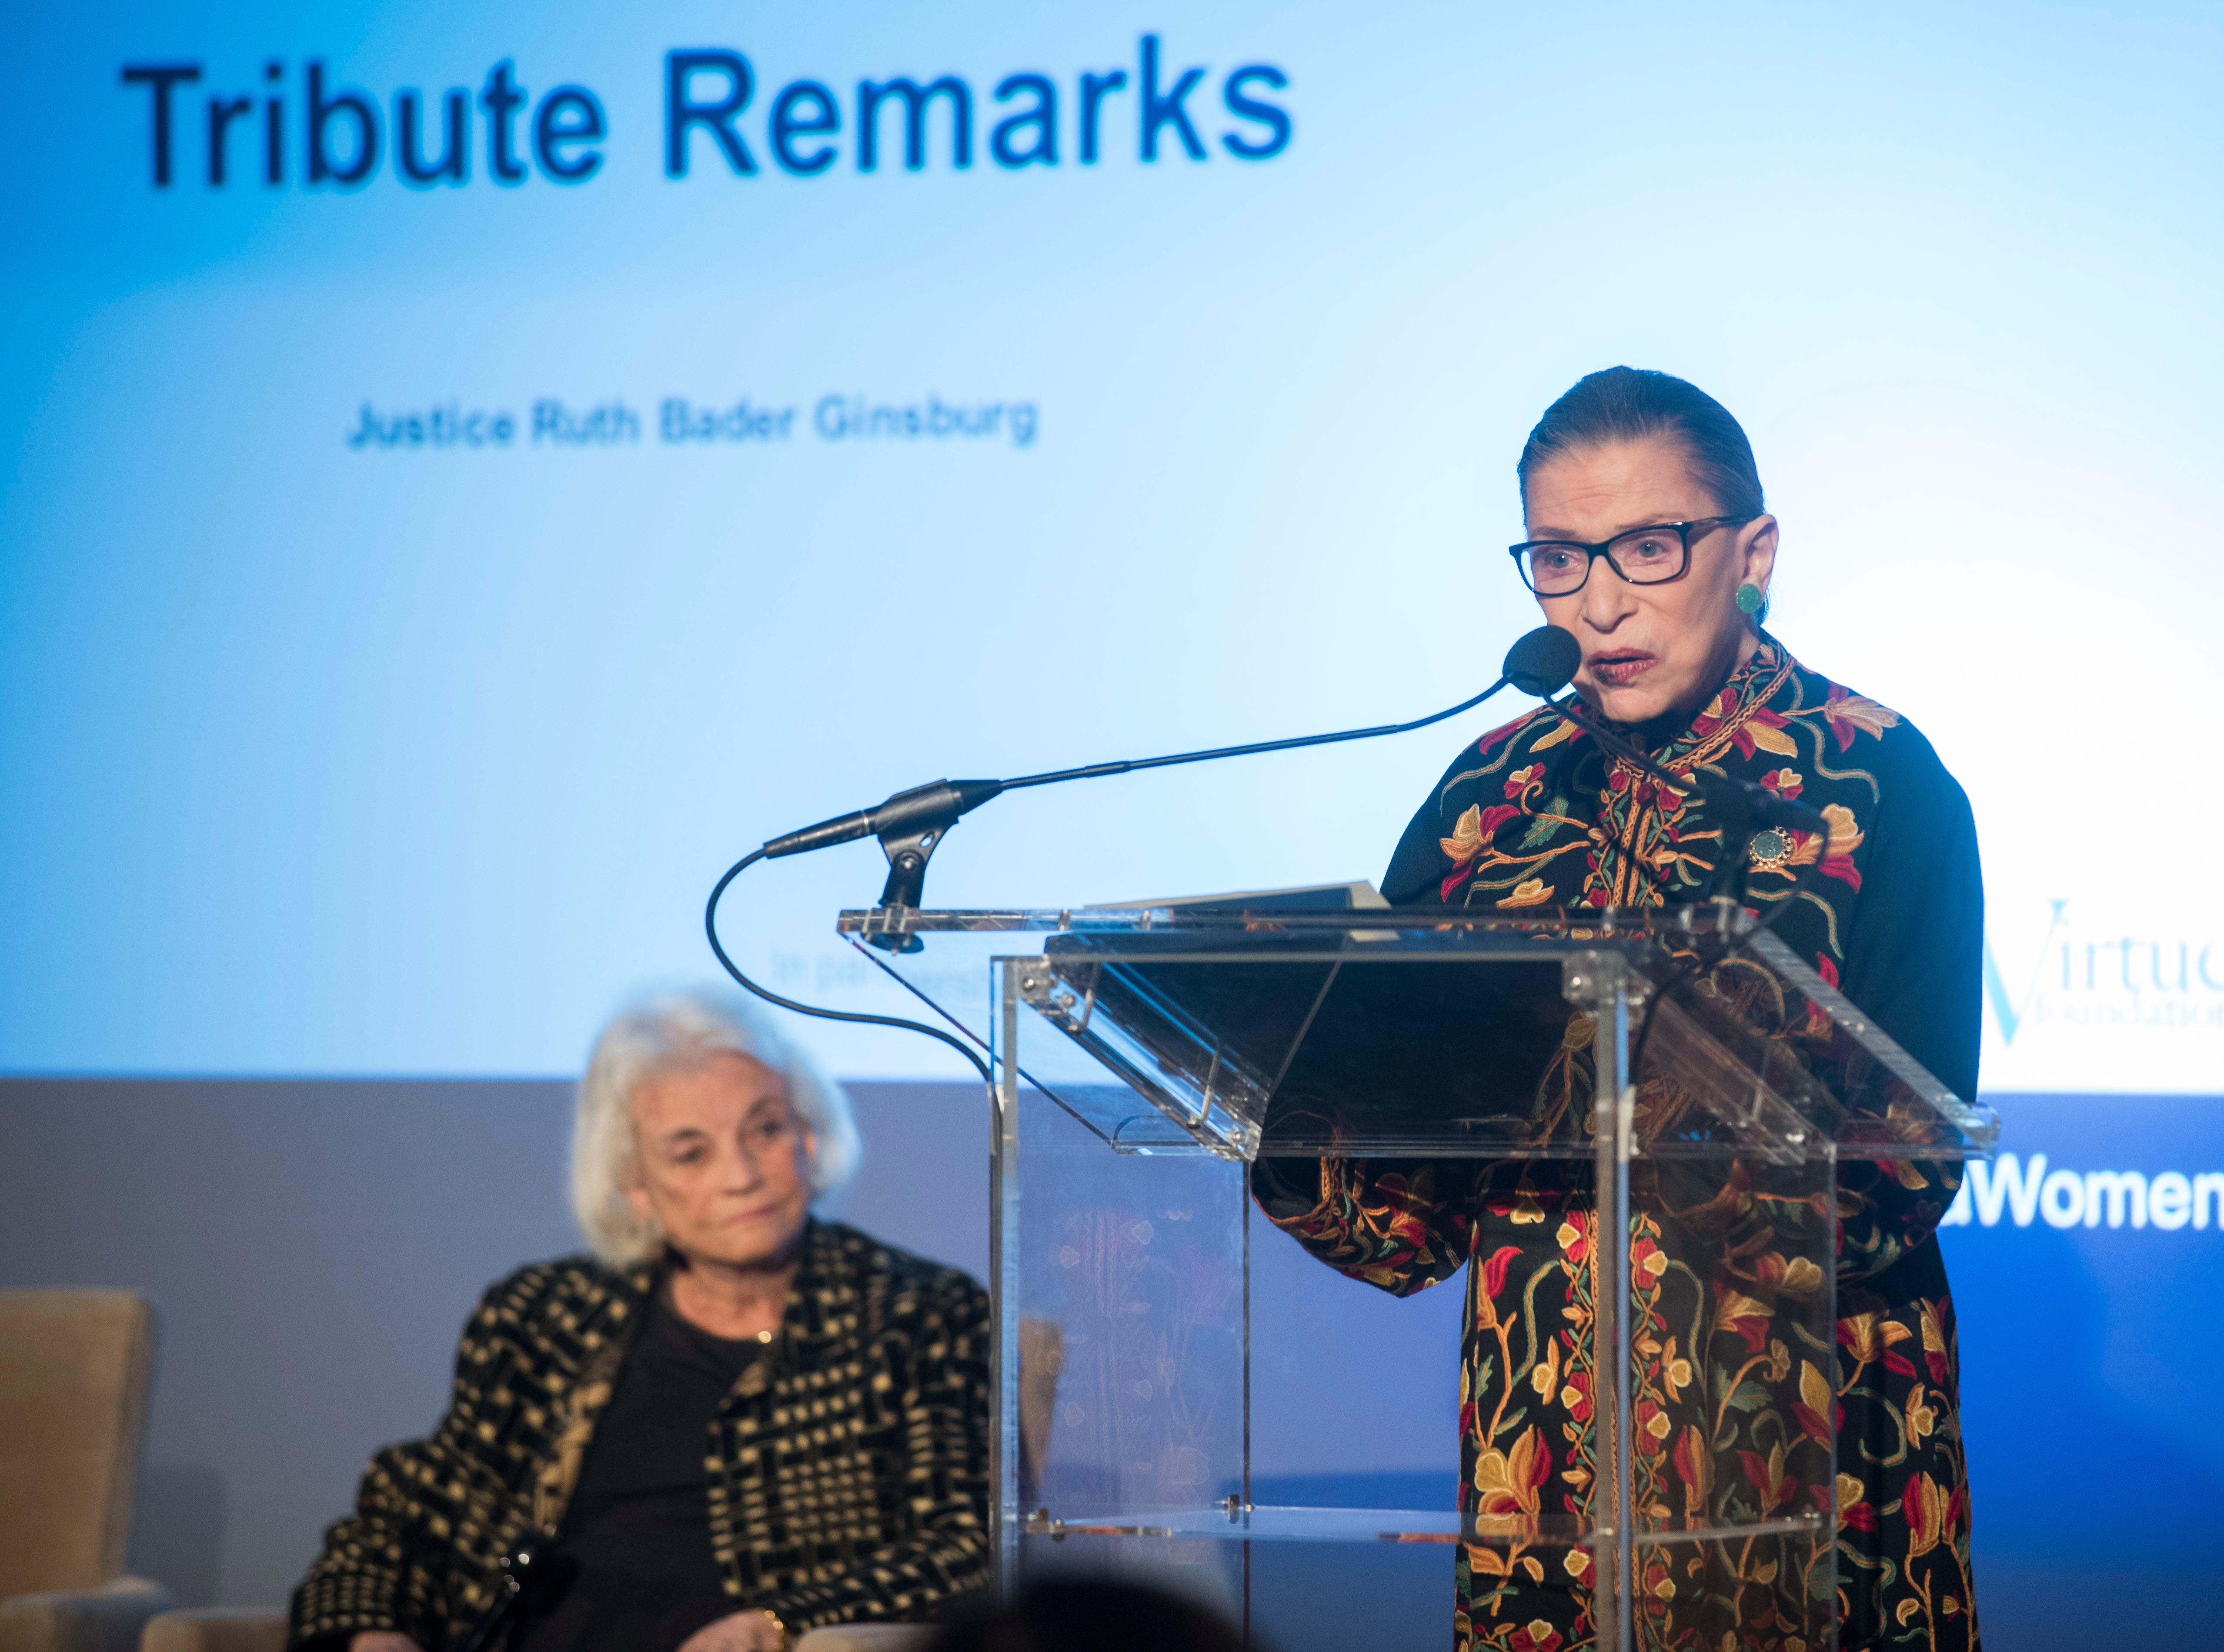 Supreme Court Justice Ruth Bader Ginsburg pays tribute to Justice Sandra Day O'Connor for her advocacy work on behalf of civic education, impact on female judges and justice for women and girls worldwide at the Seneca Women Global Leadership Forum at the National Museum of Women in the Arts, on April 15, 2015 in Washington.